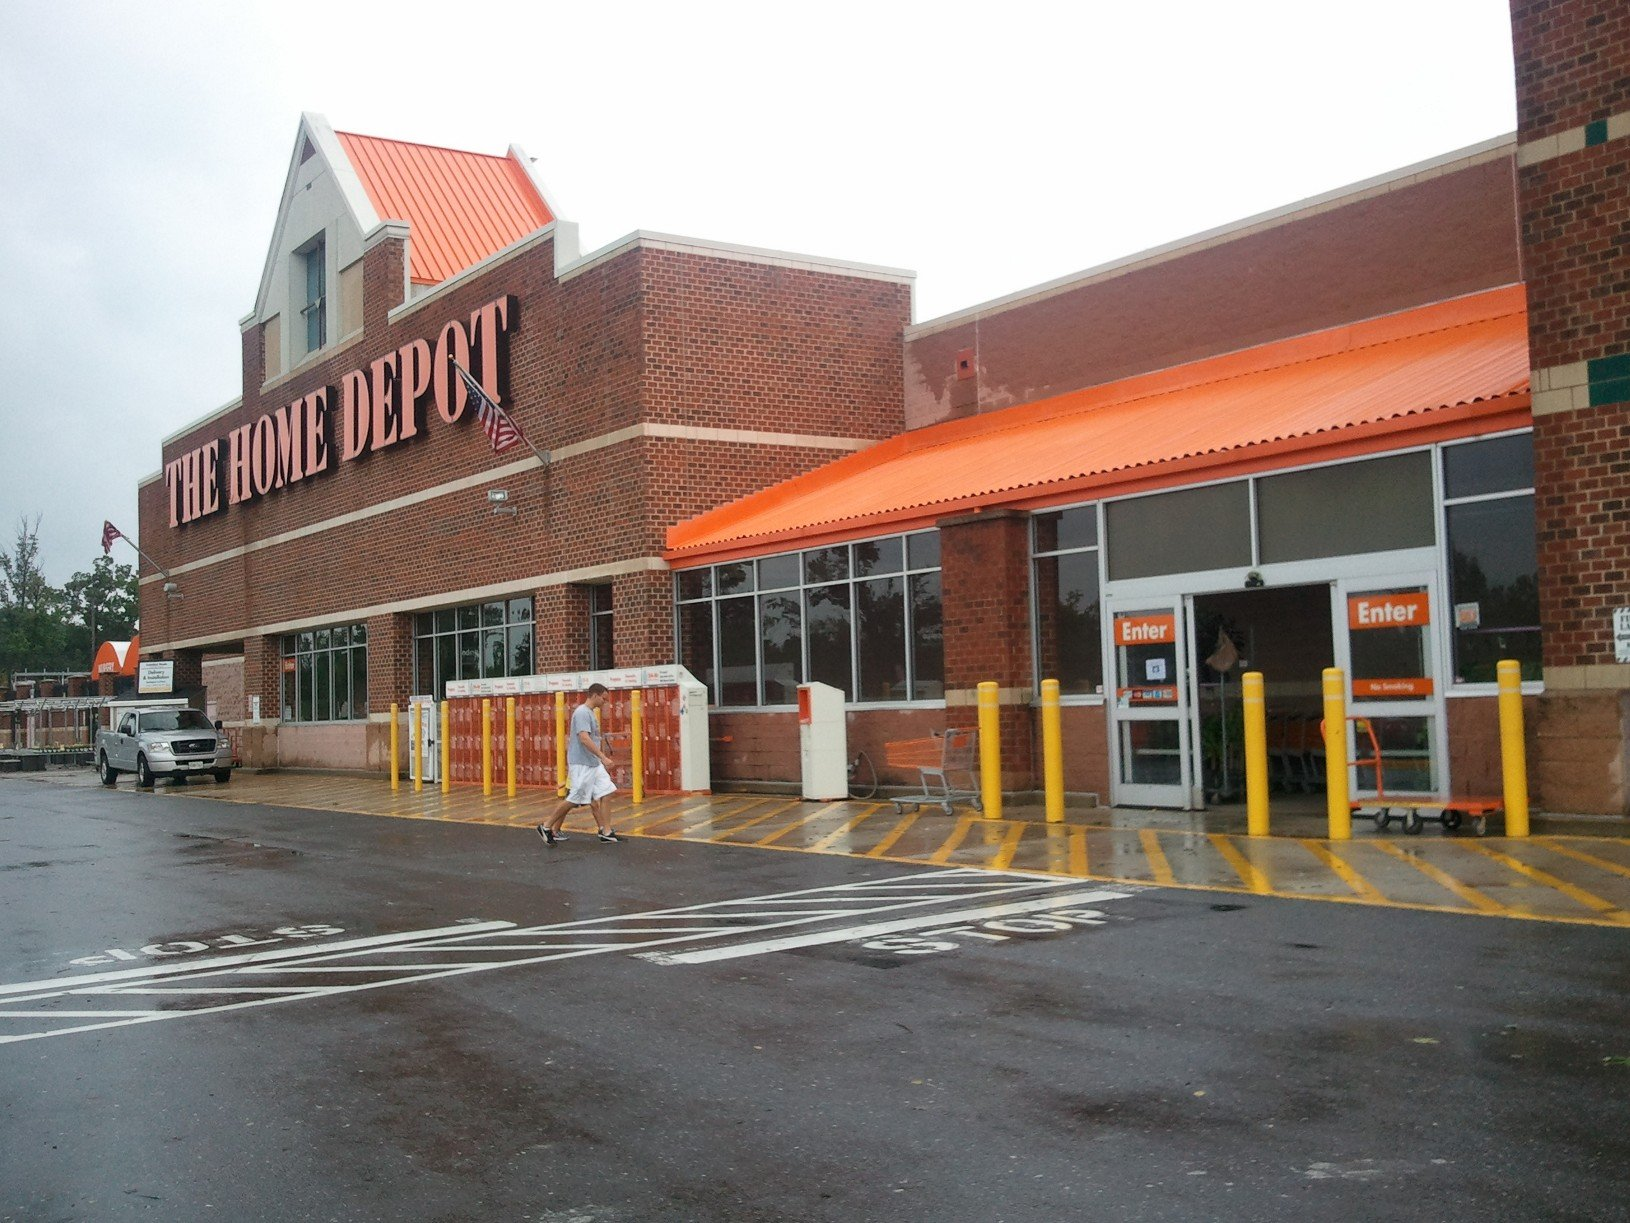 Home Depot Open But Without Power